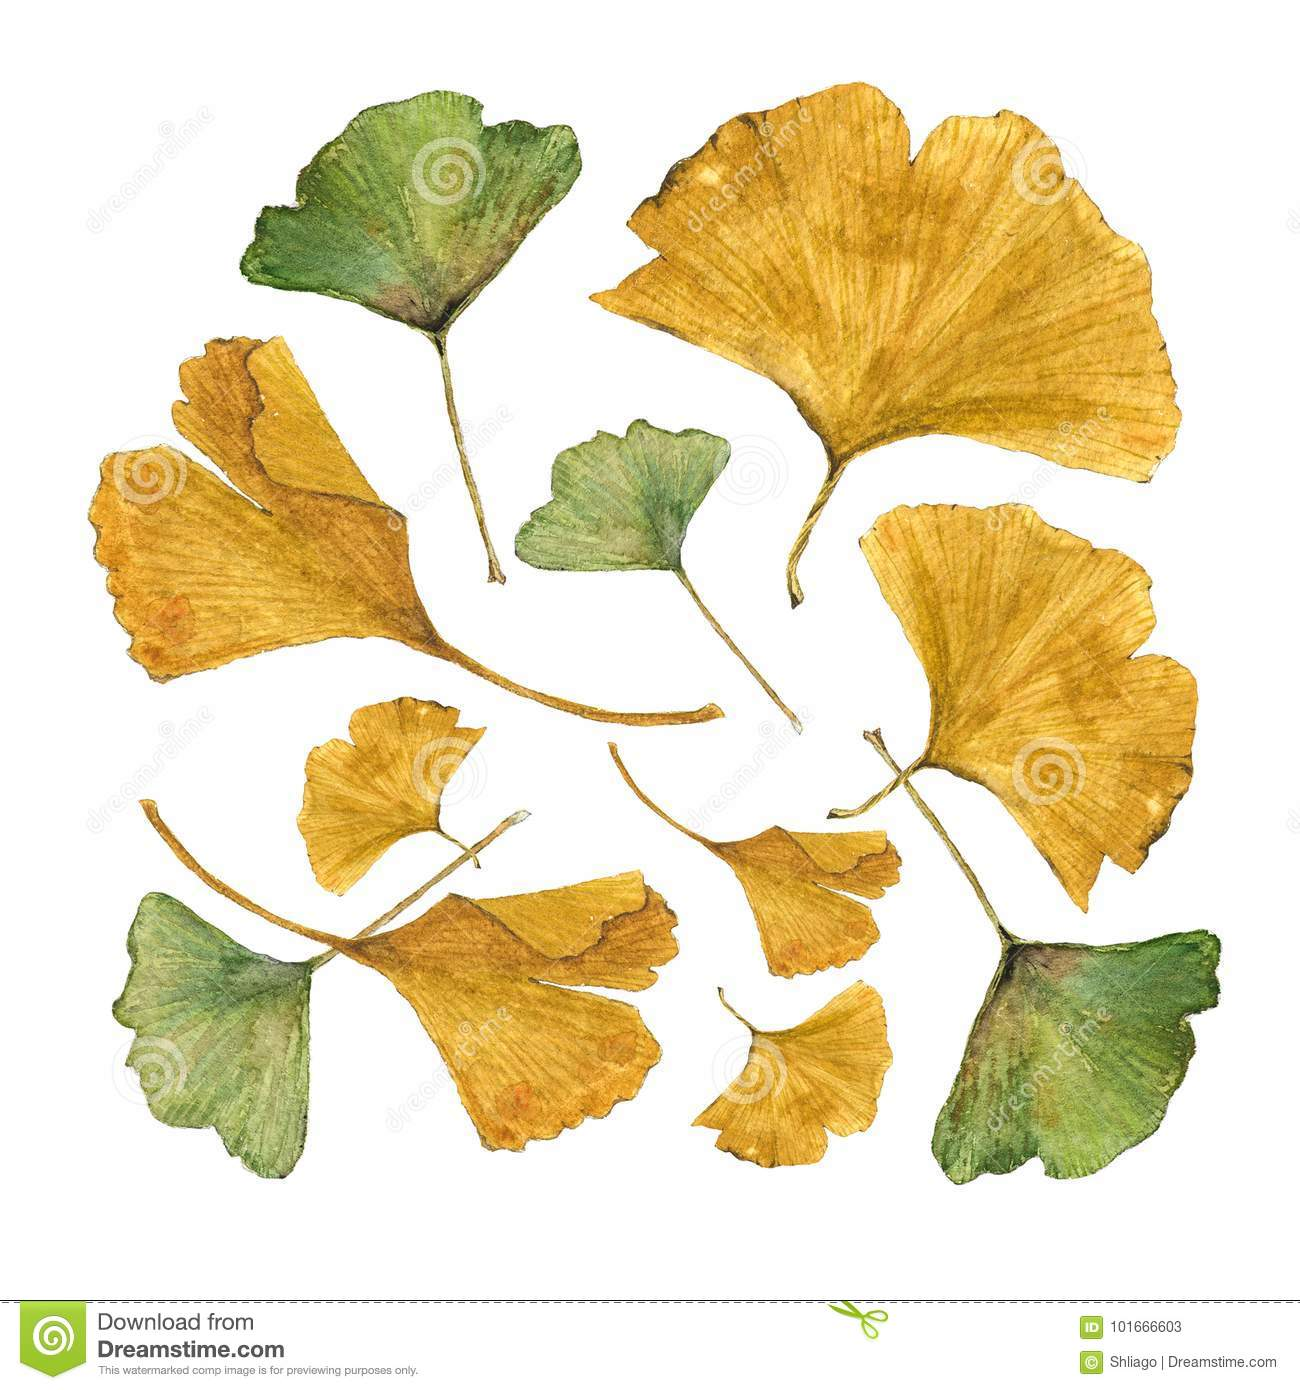 Botanical Watercolor Illustration Of Colorful Ginkgo Leaves On White ...